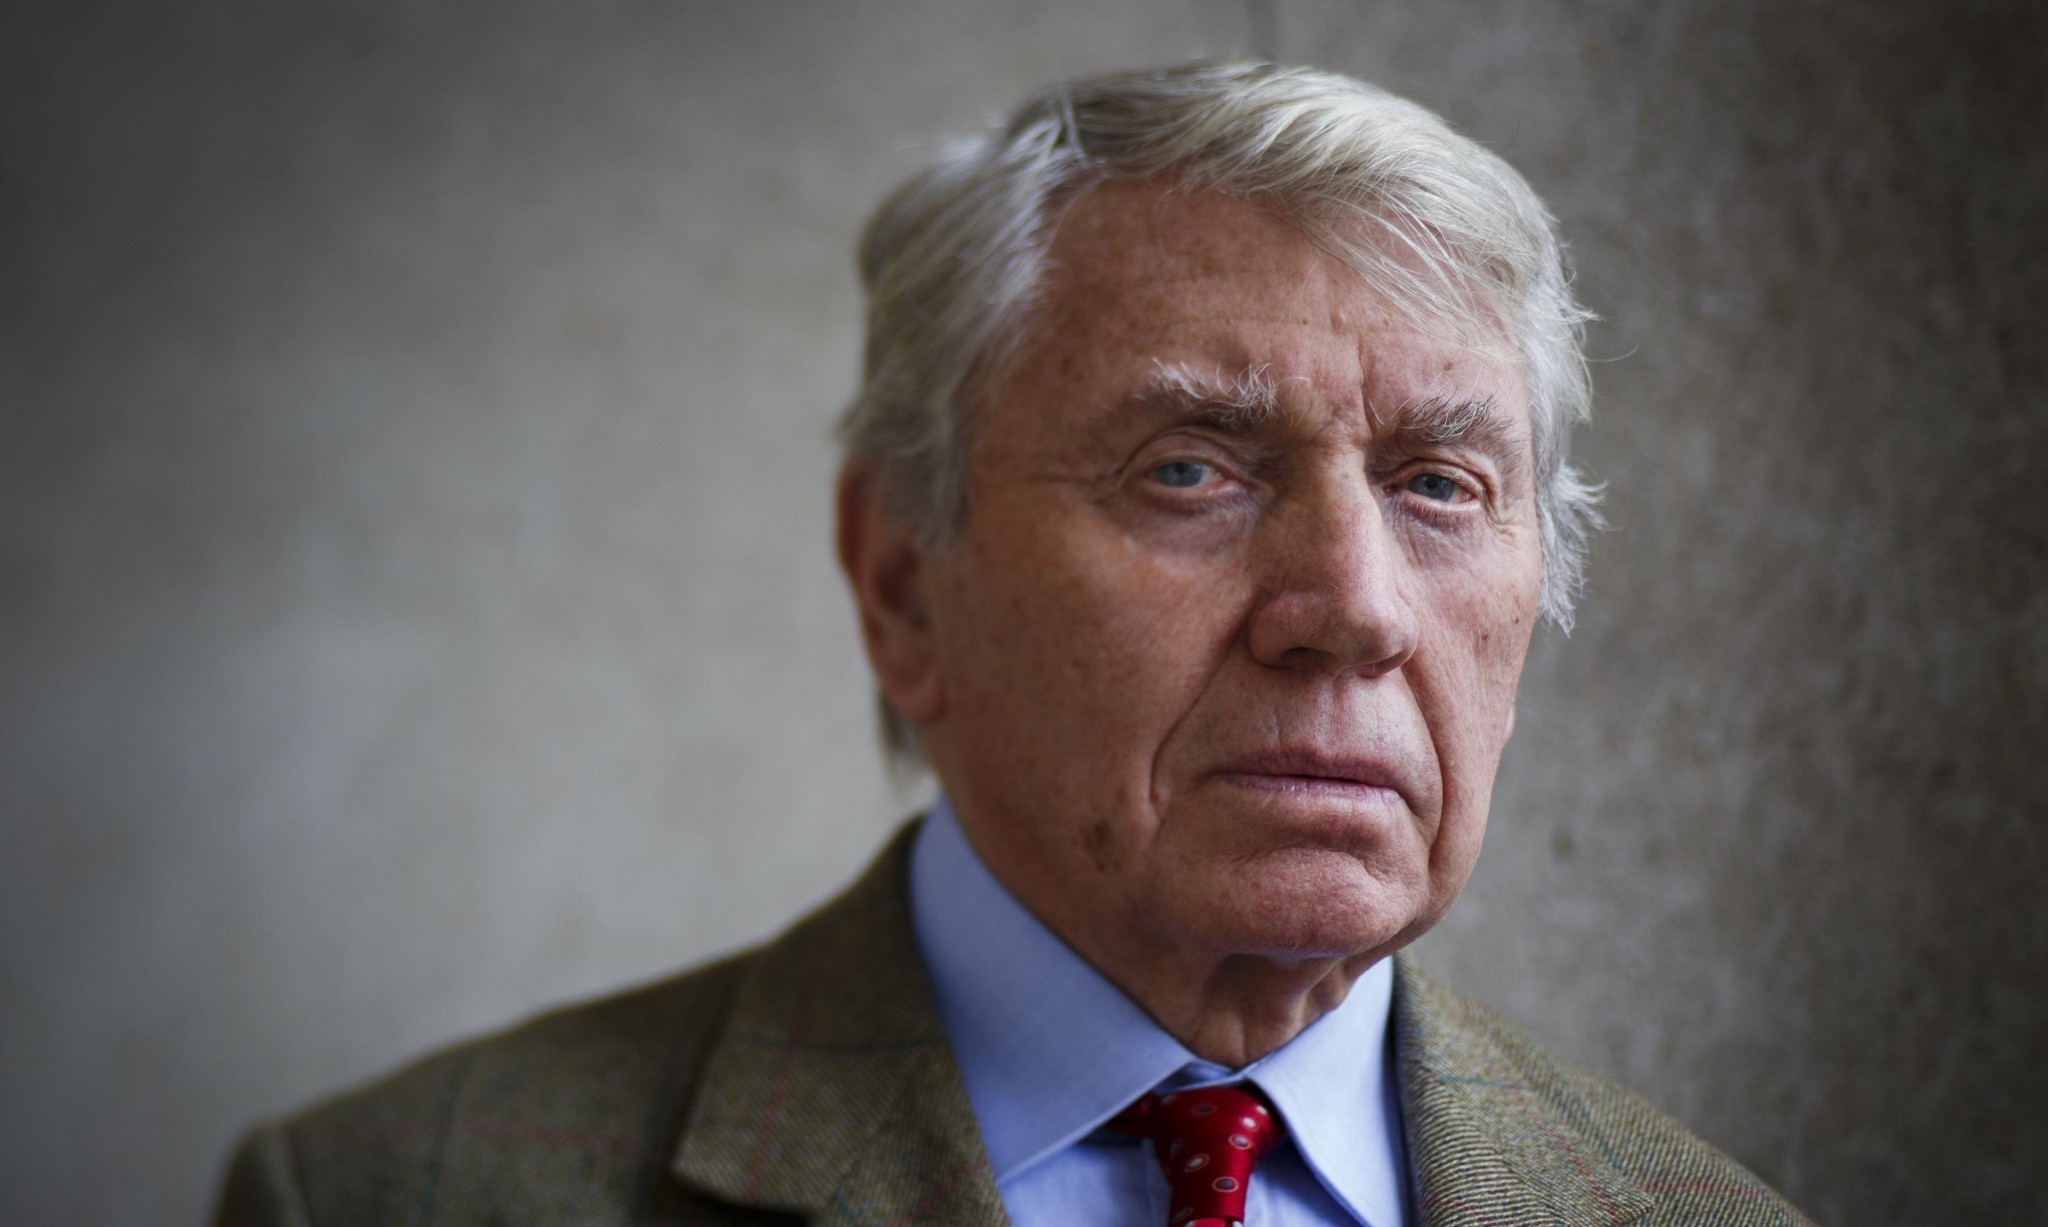 Digital images can't be trusted, says war photographer Don McCullin